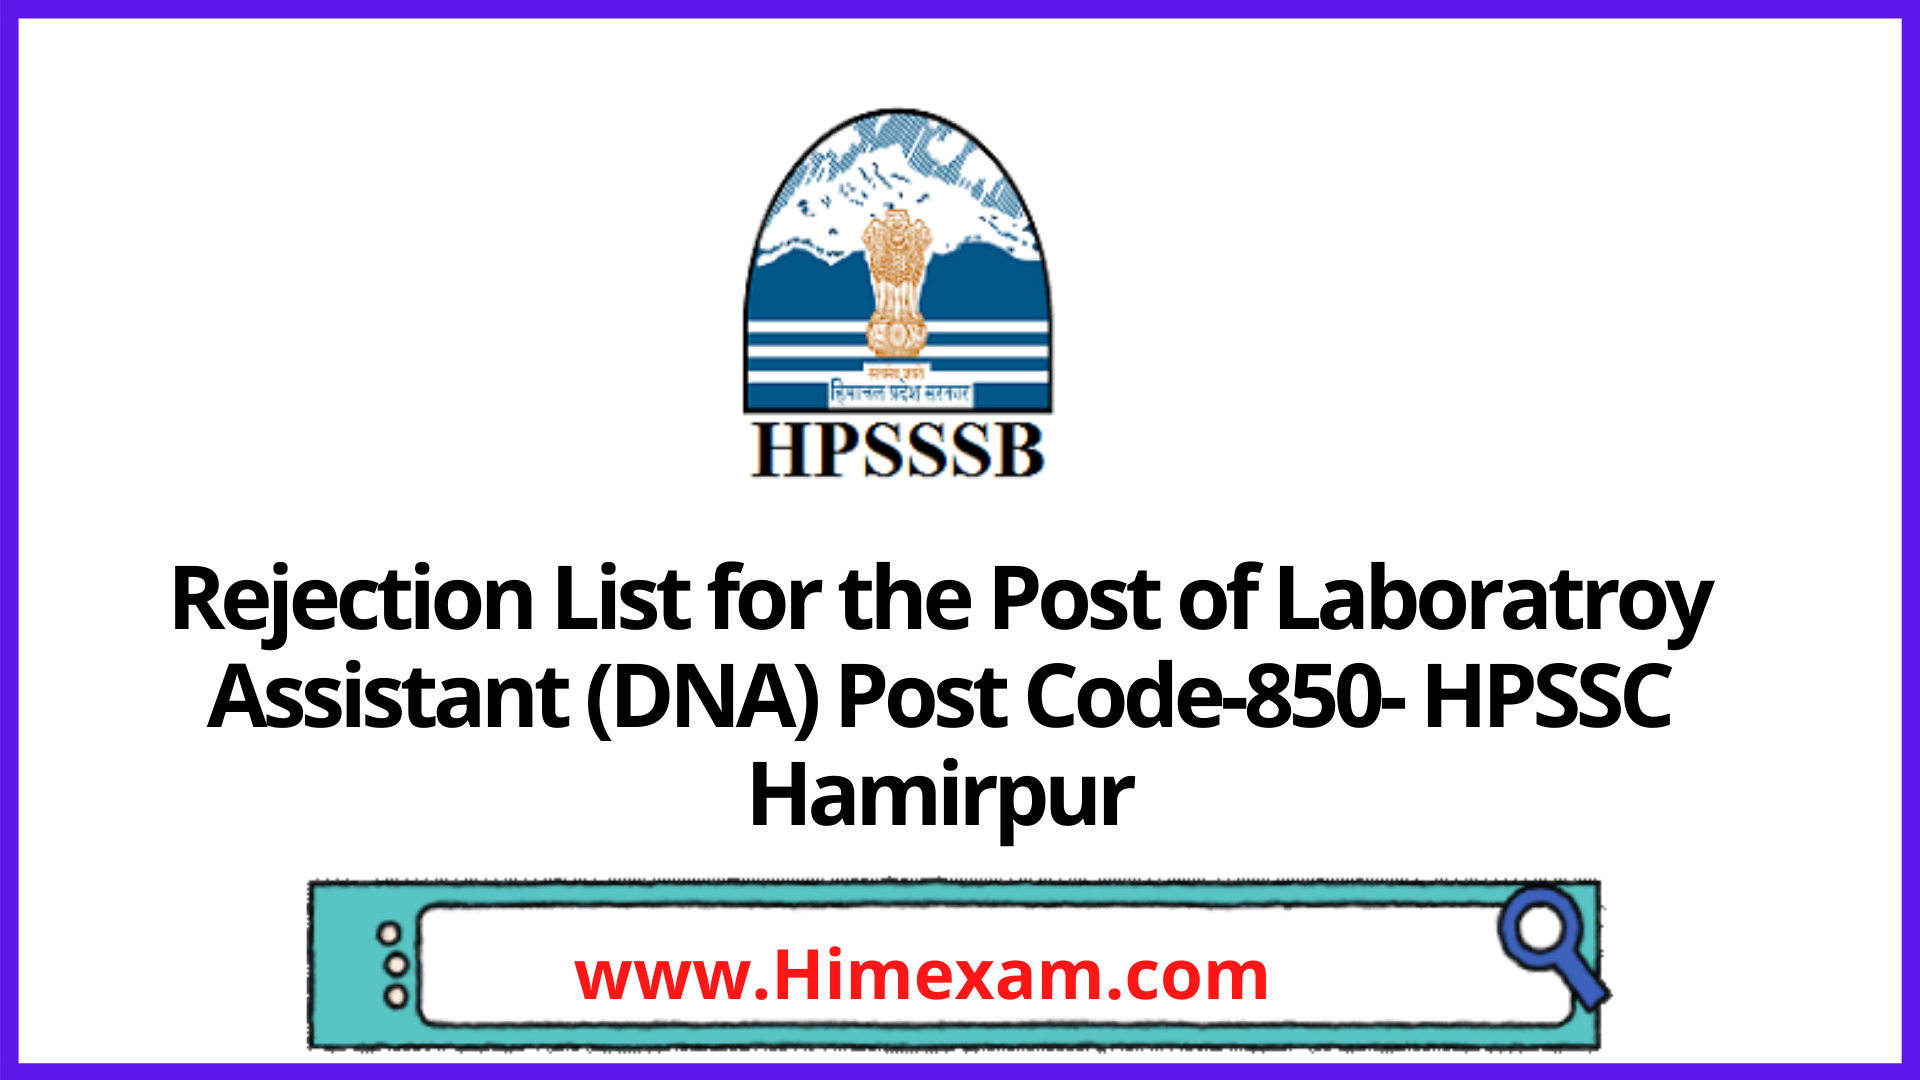 Rejection List for the Post of Laboratroy Assistant (DNA) Post Code-850- HPSSC Hamirpur